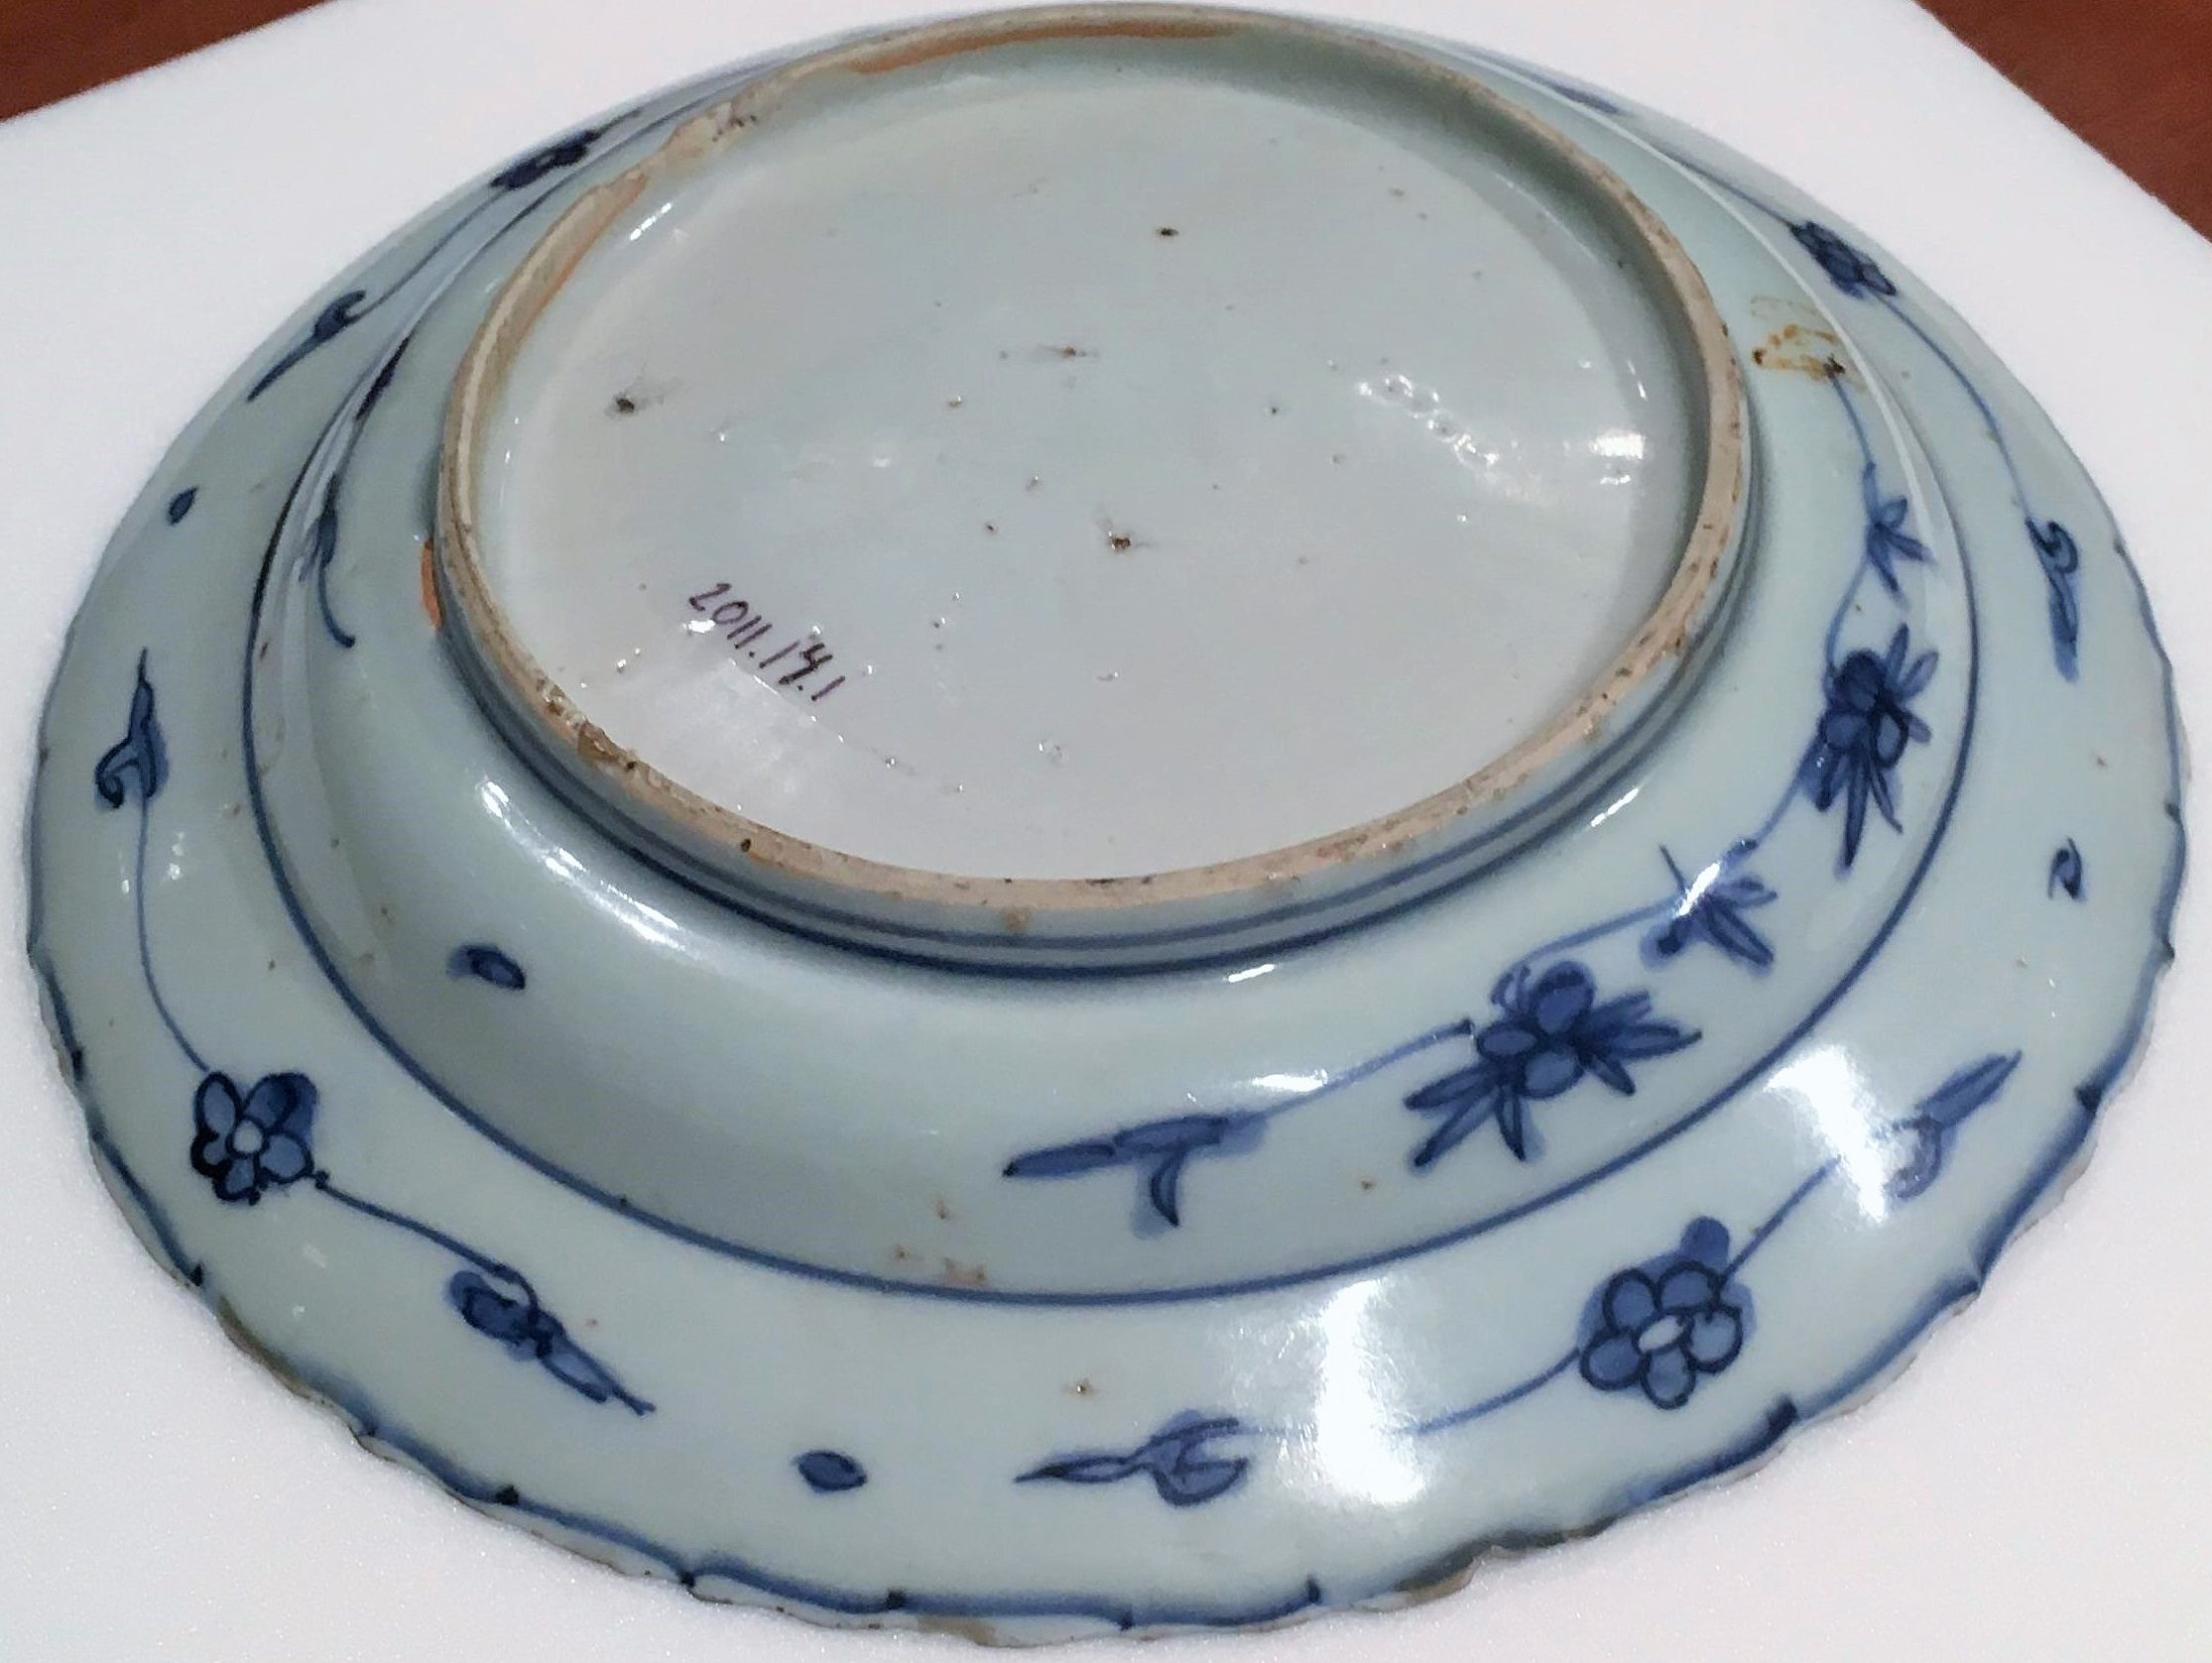 Blue-and-White Wonder: Ming Dynasty Porcelain Plate – Wonders of